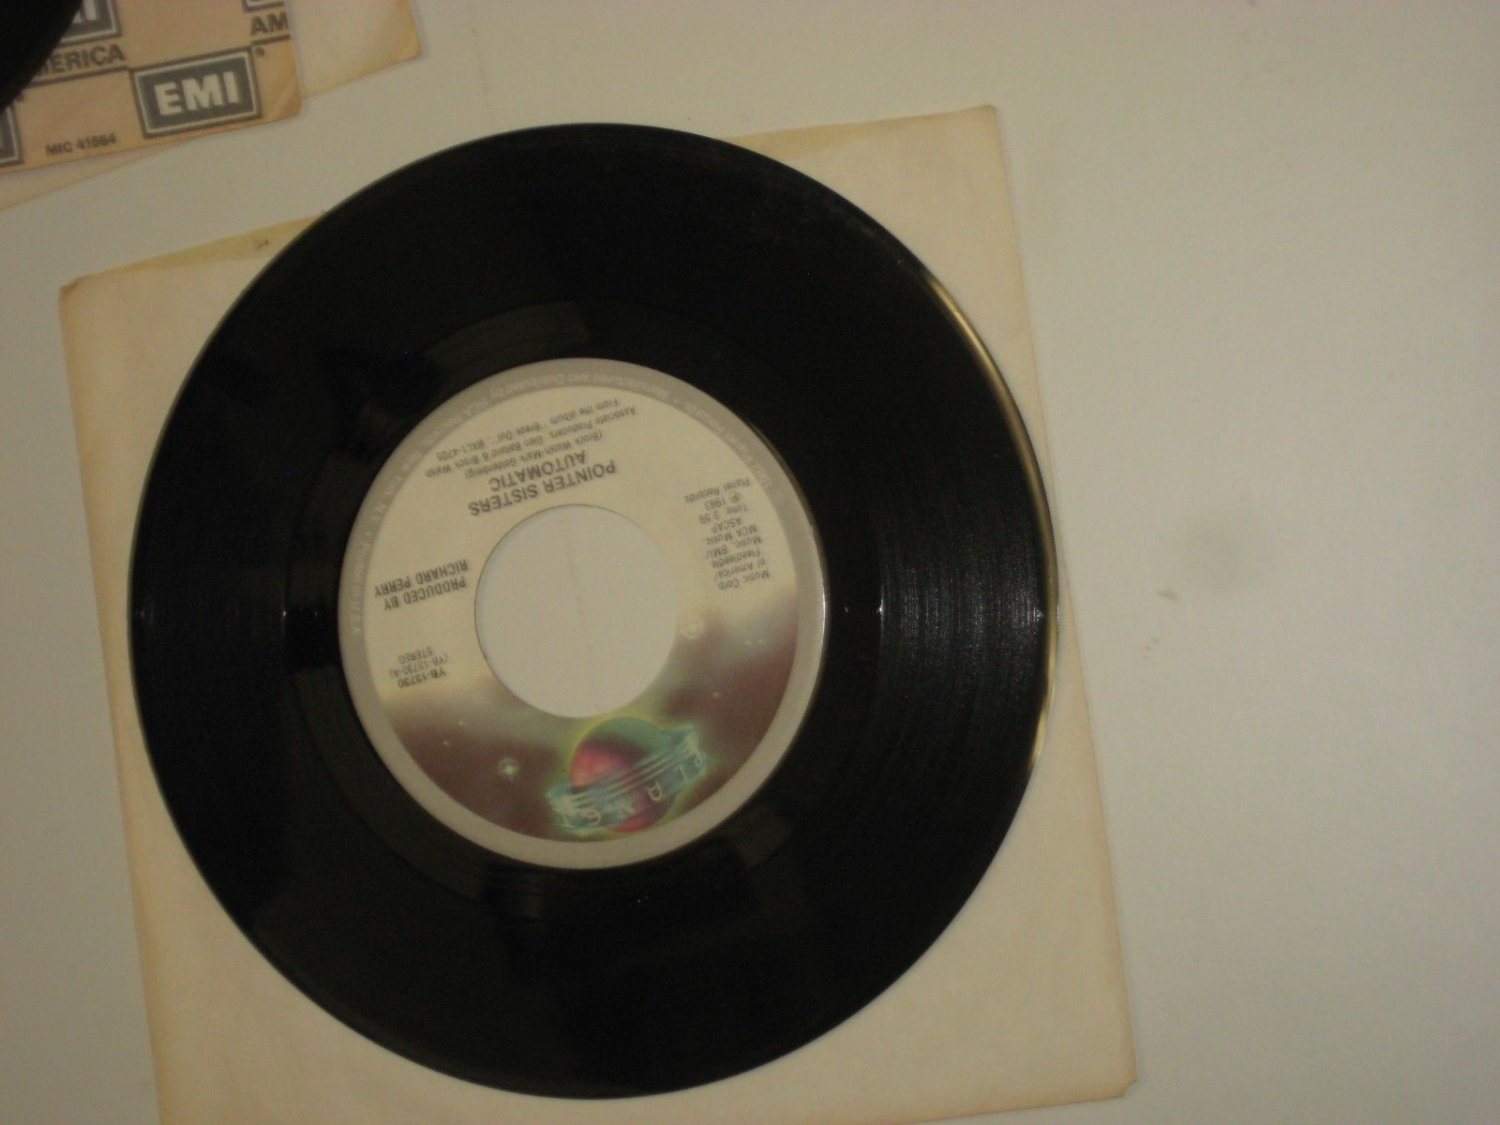 "POINTER SISTERS  I'm So Excited 7"" 45 rpm vinyl record + juke box title strip"